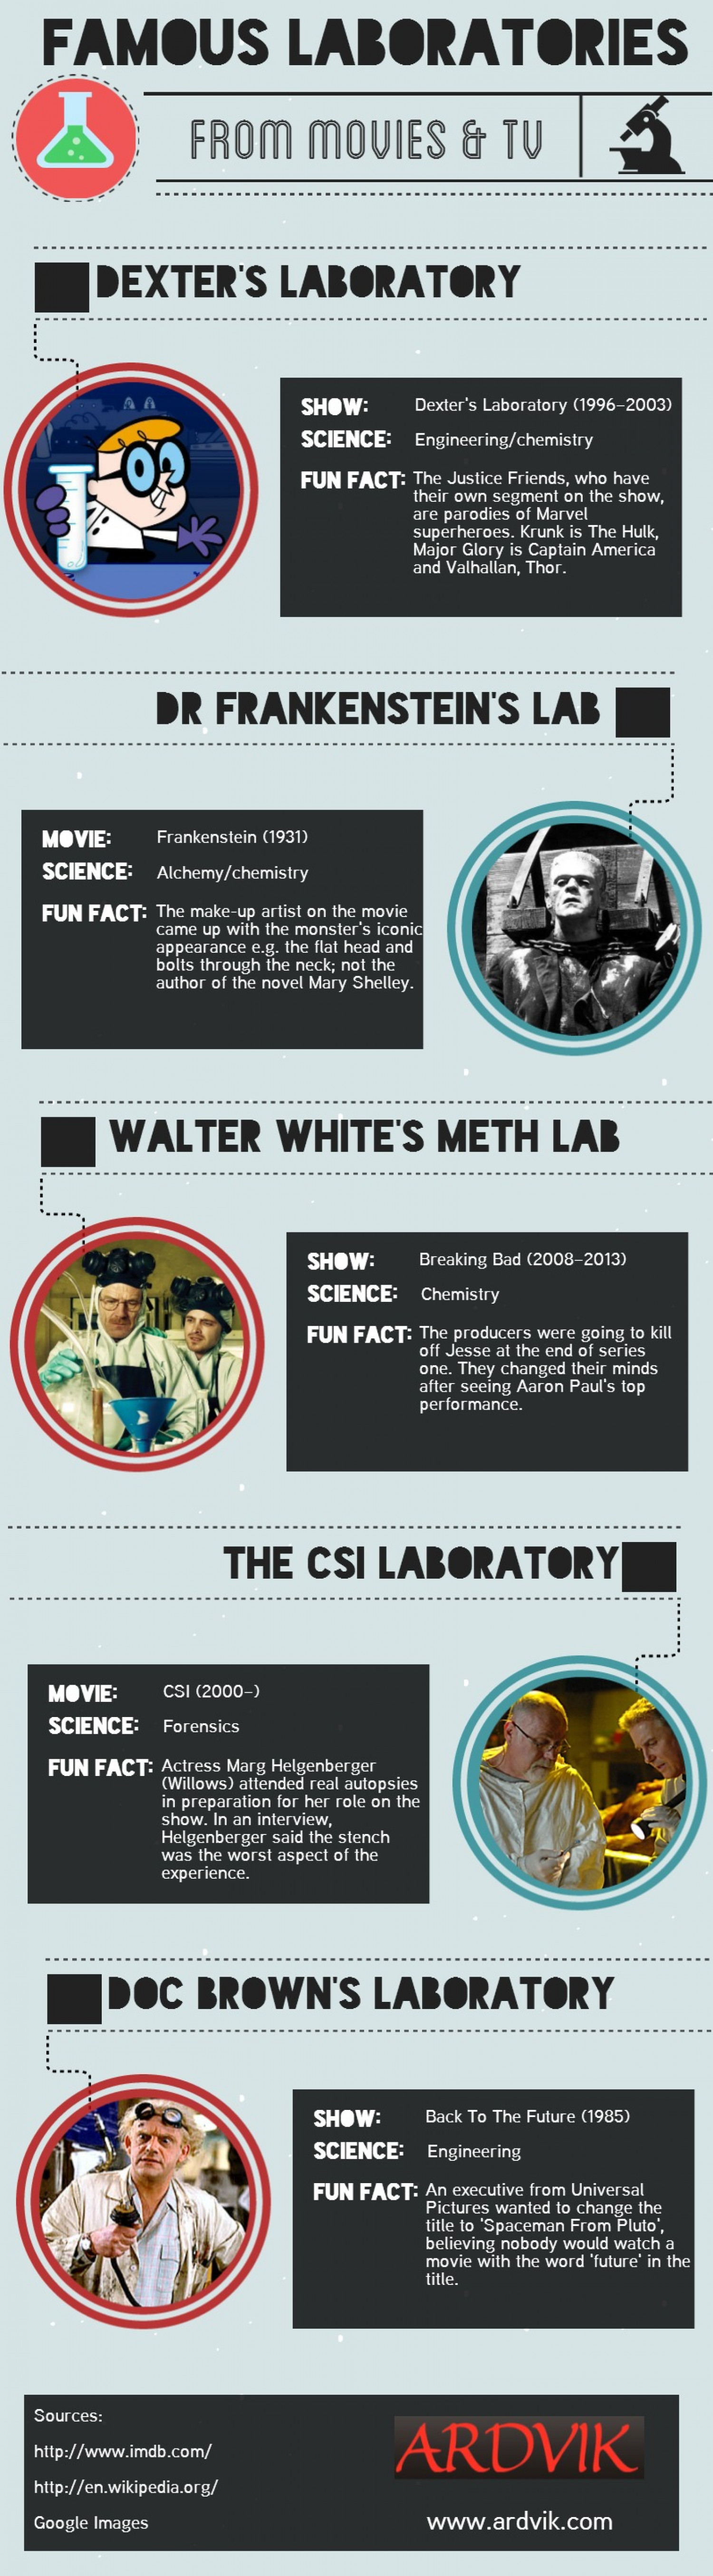 Famous Laboratories From Movies & Tv Infographic